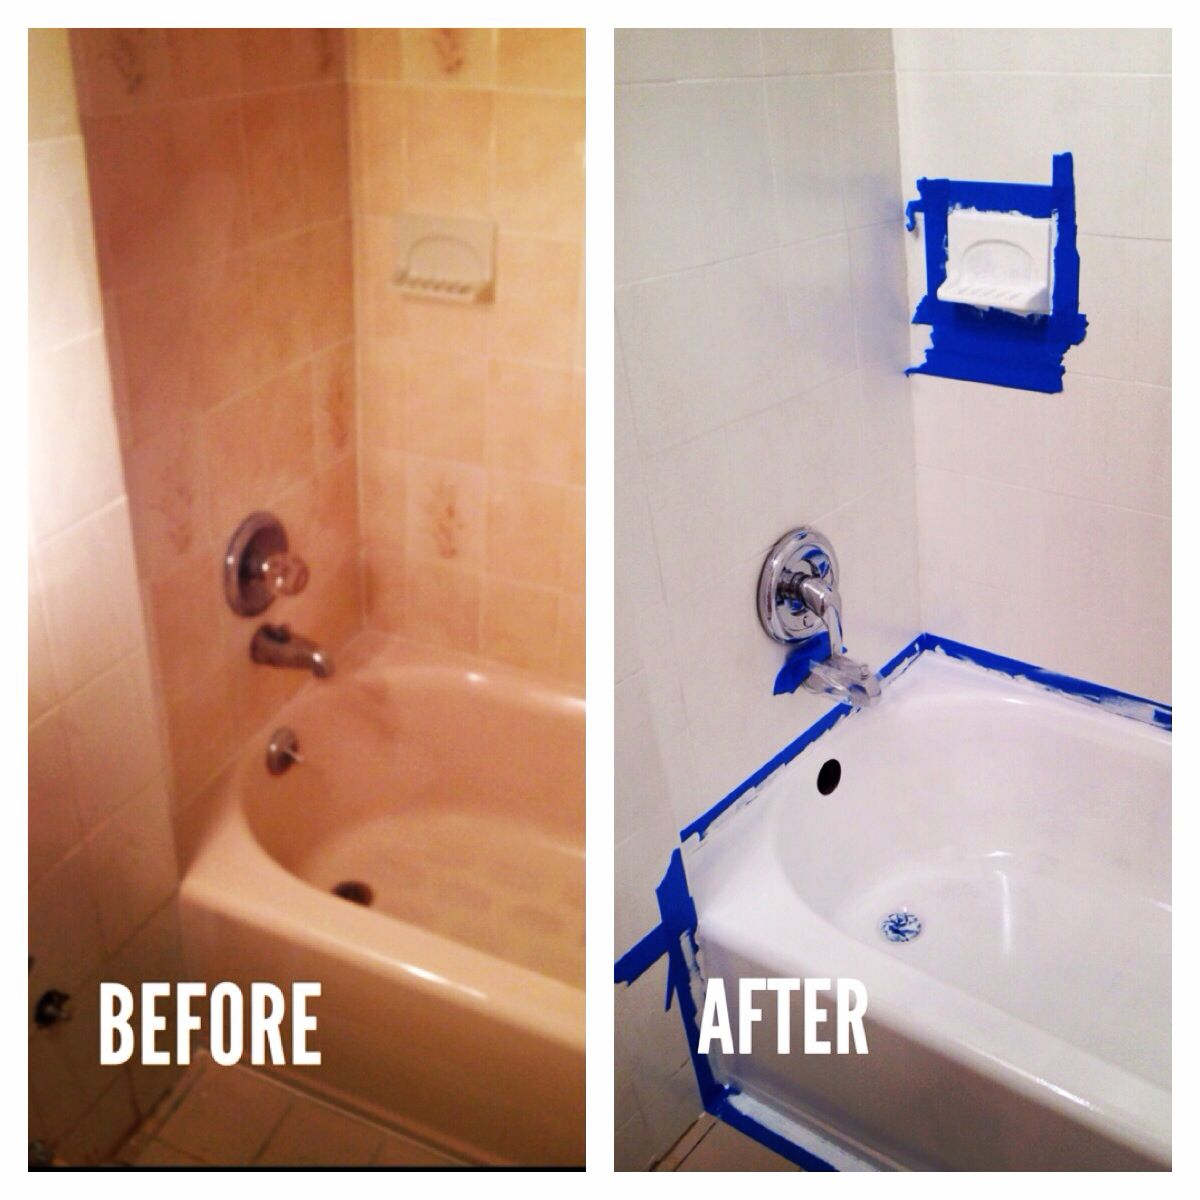 Painting Bathroom Tiles And Baths rustoleum tub & tile + rustoleum tile transformations. paint tiles